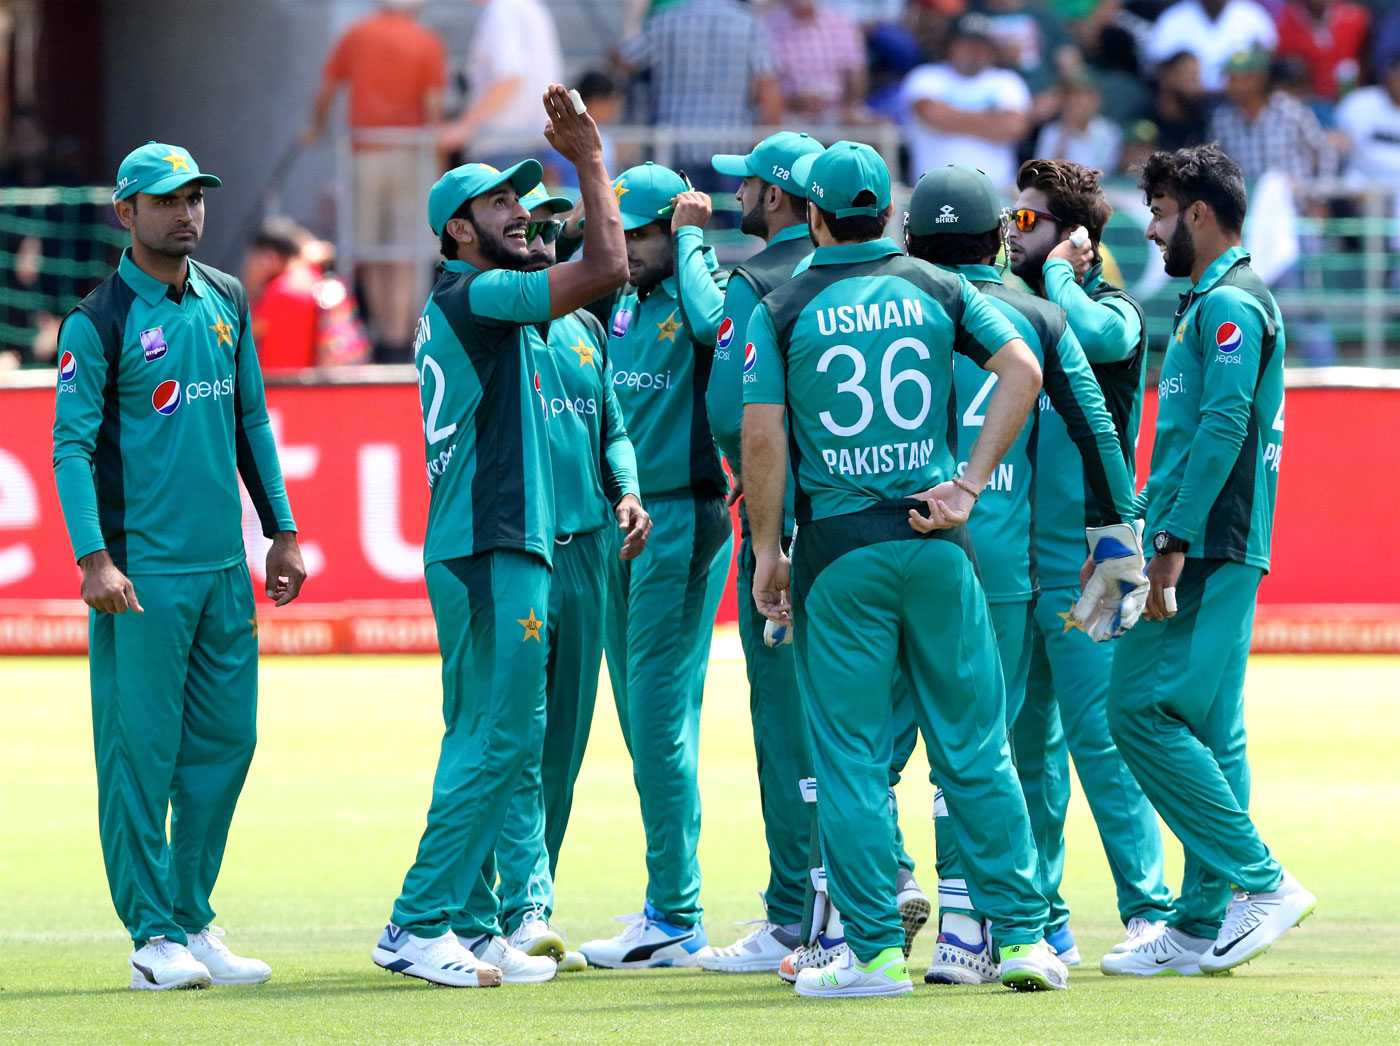 South Africa win toss and opt to field first in 2nd ODI against Pakistan